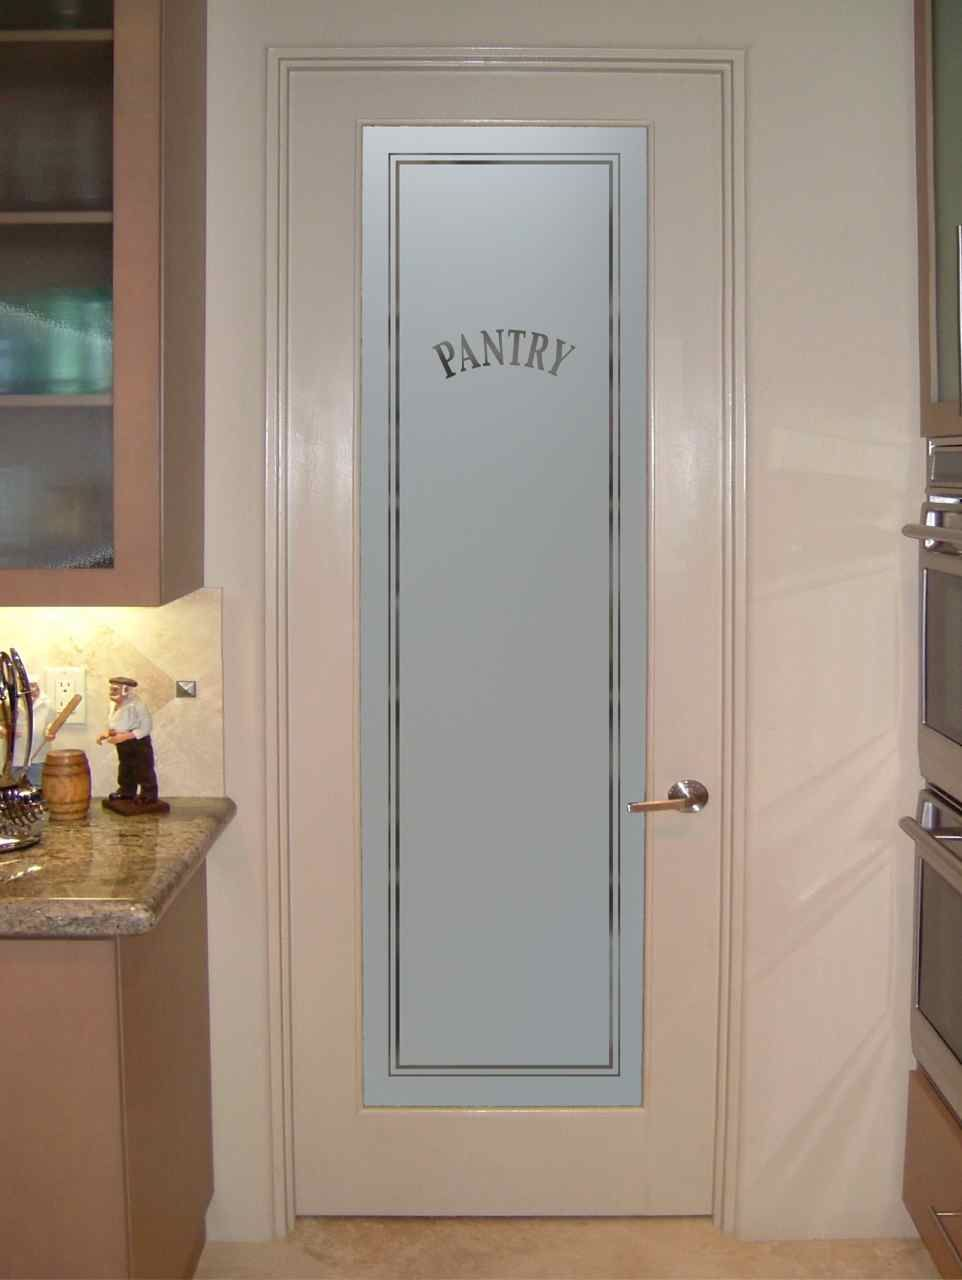 Classic Pantry Door Customize Your Glass And Door Any Size As Glass Insert Only Or Pre Installed In Frosted Glass Pantry Door Glass Pantry Door Pantry Door